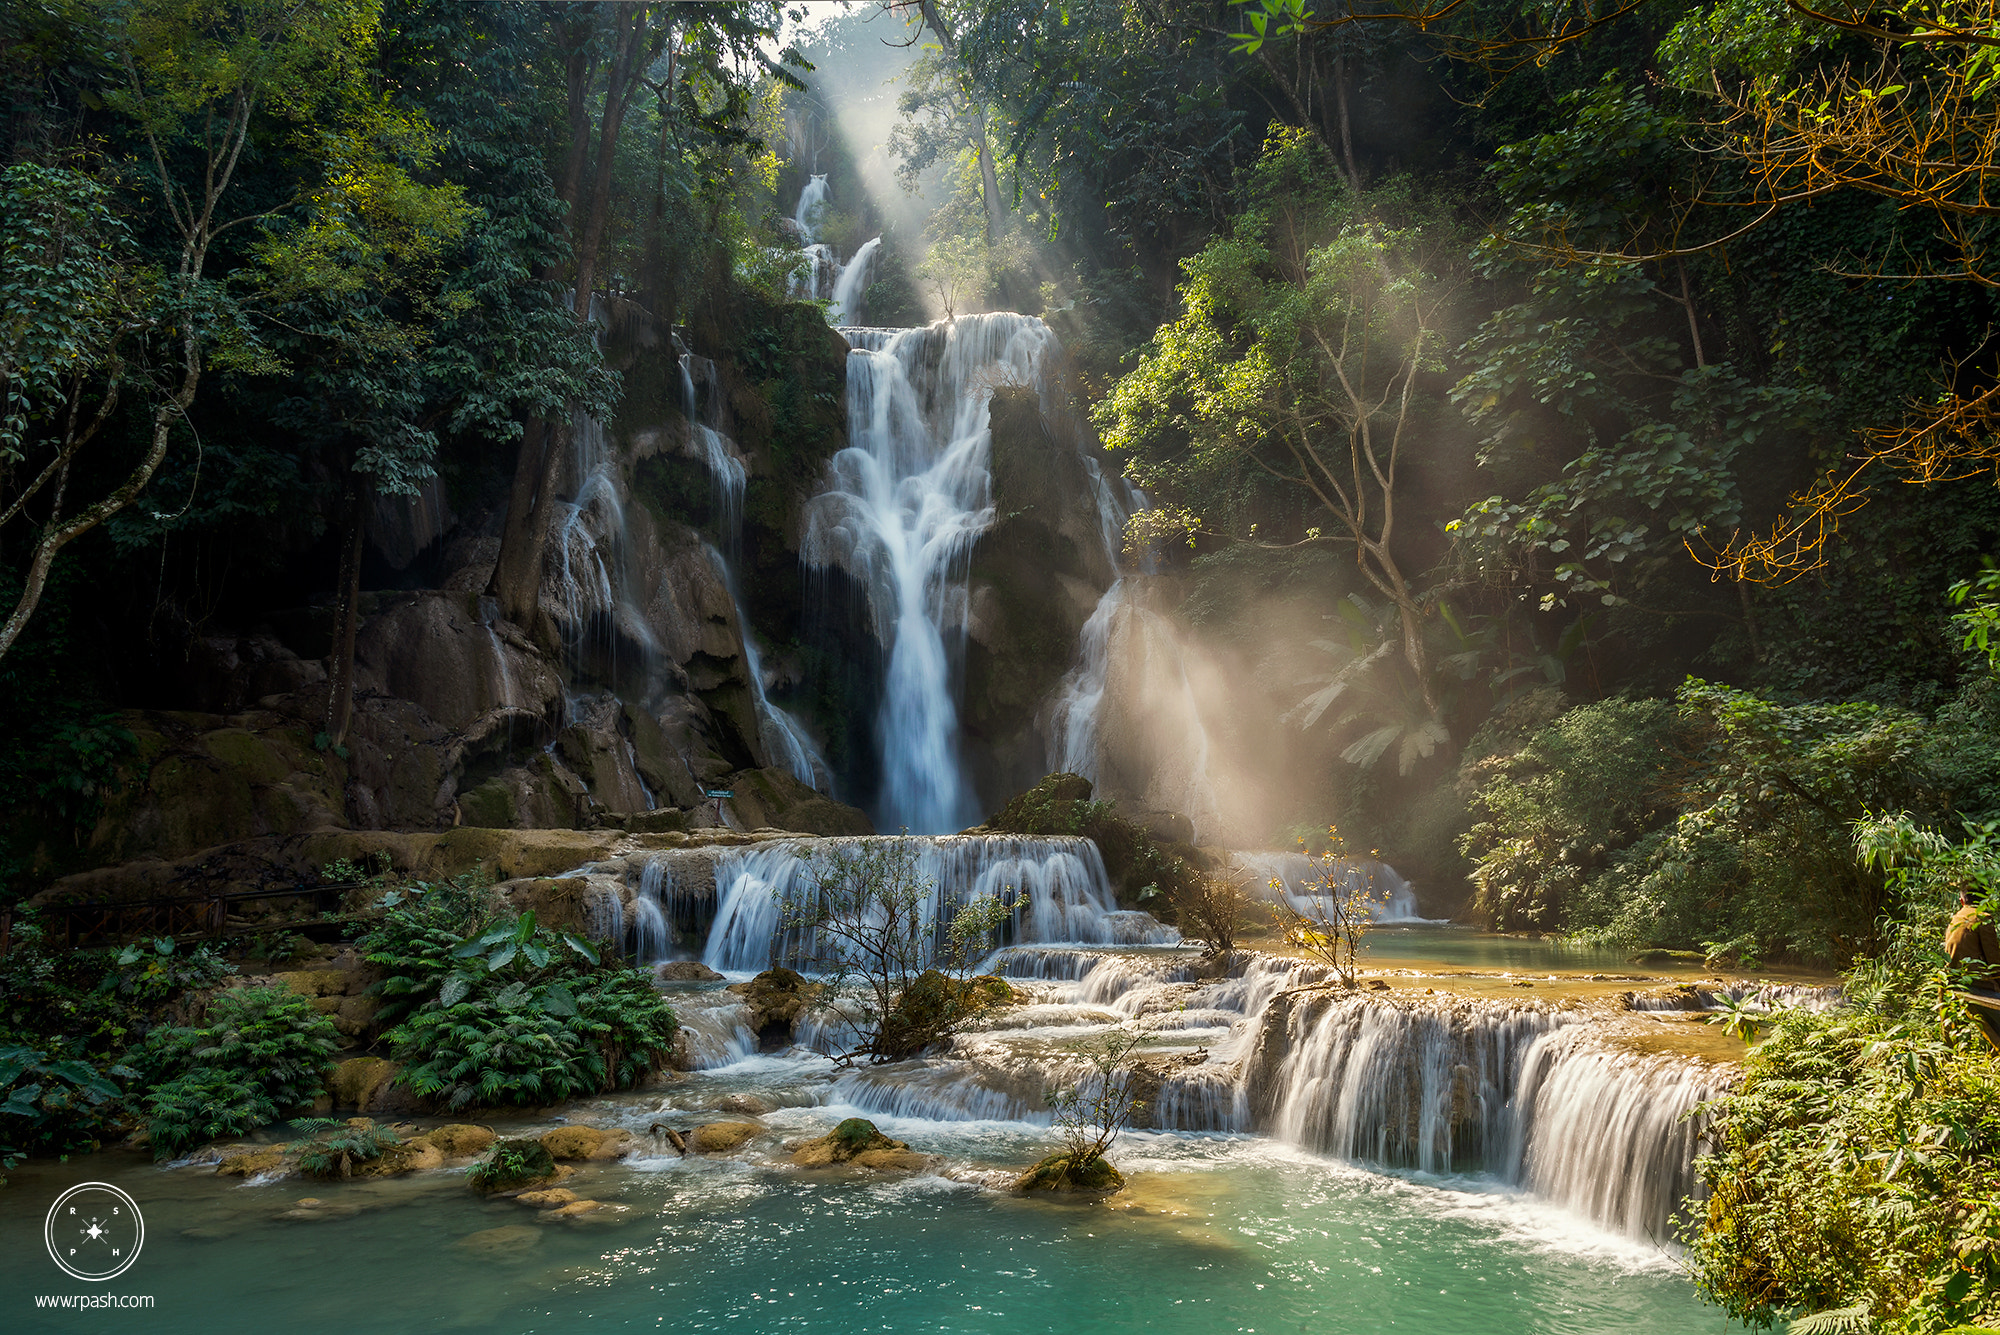 Photograph Tadklangsi waterfall, laos by jaruwat pulsup on 500px